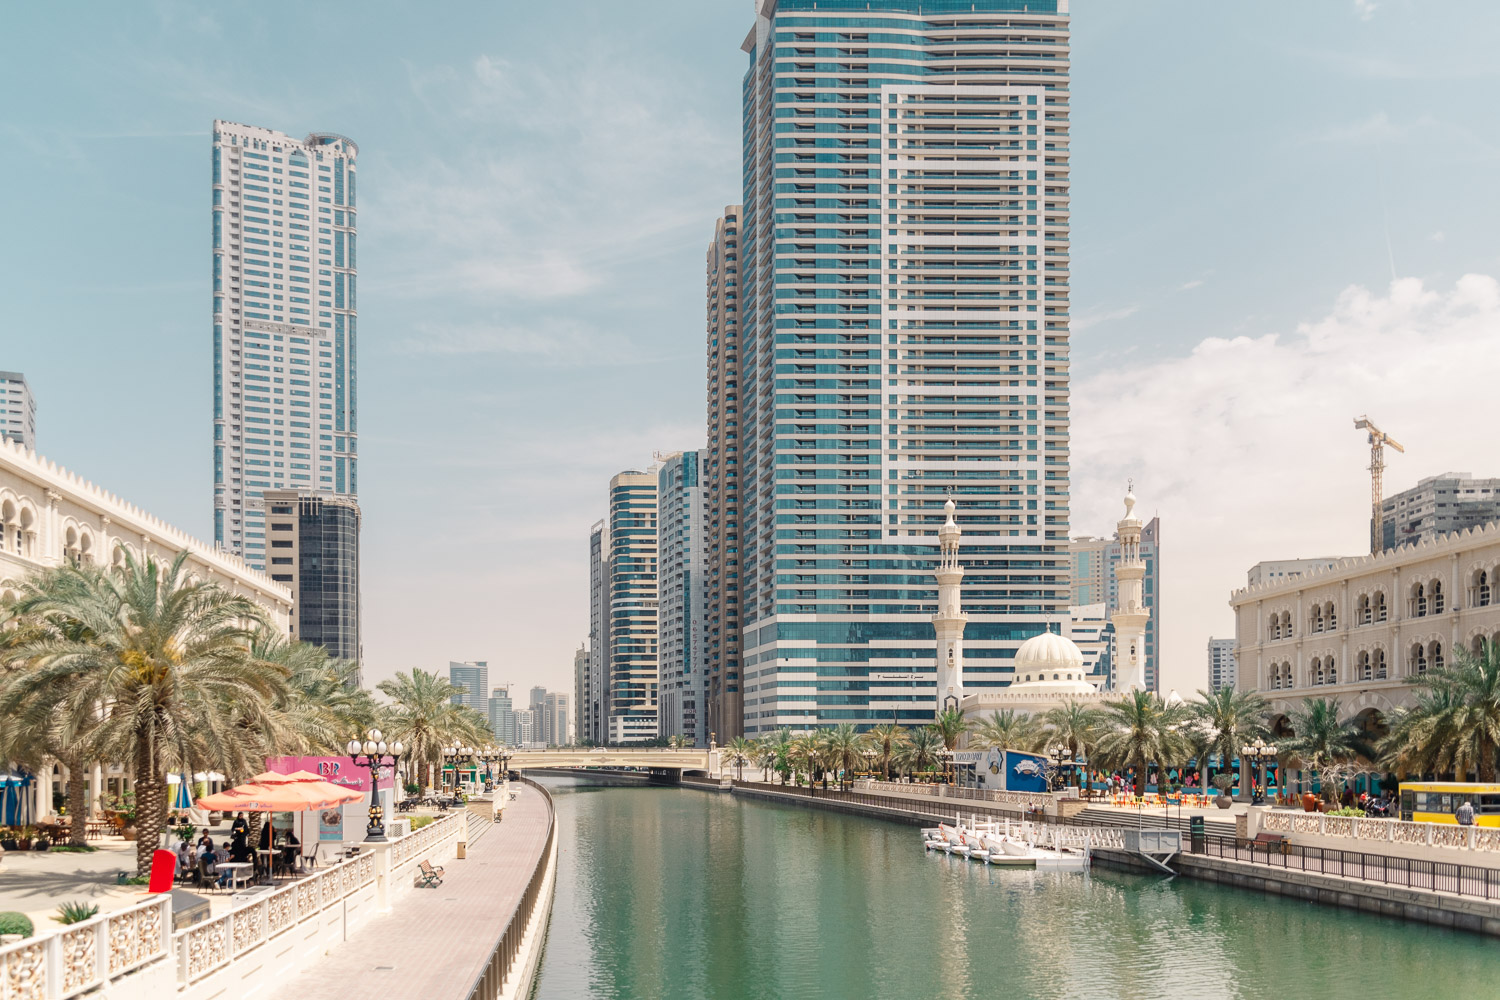 Al Qasba | Things to Do in Sharjah